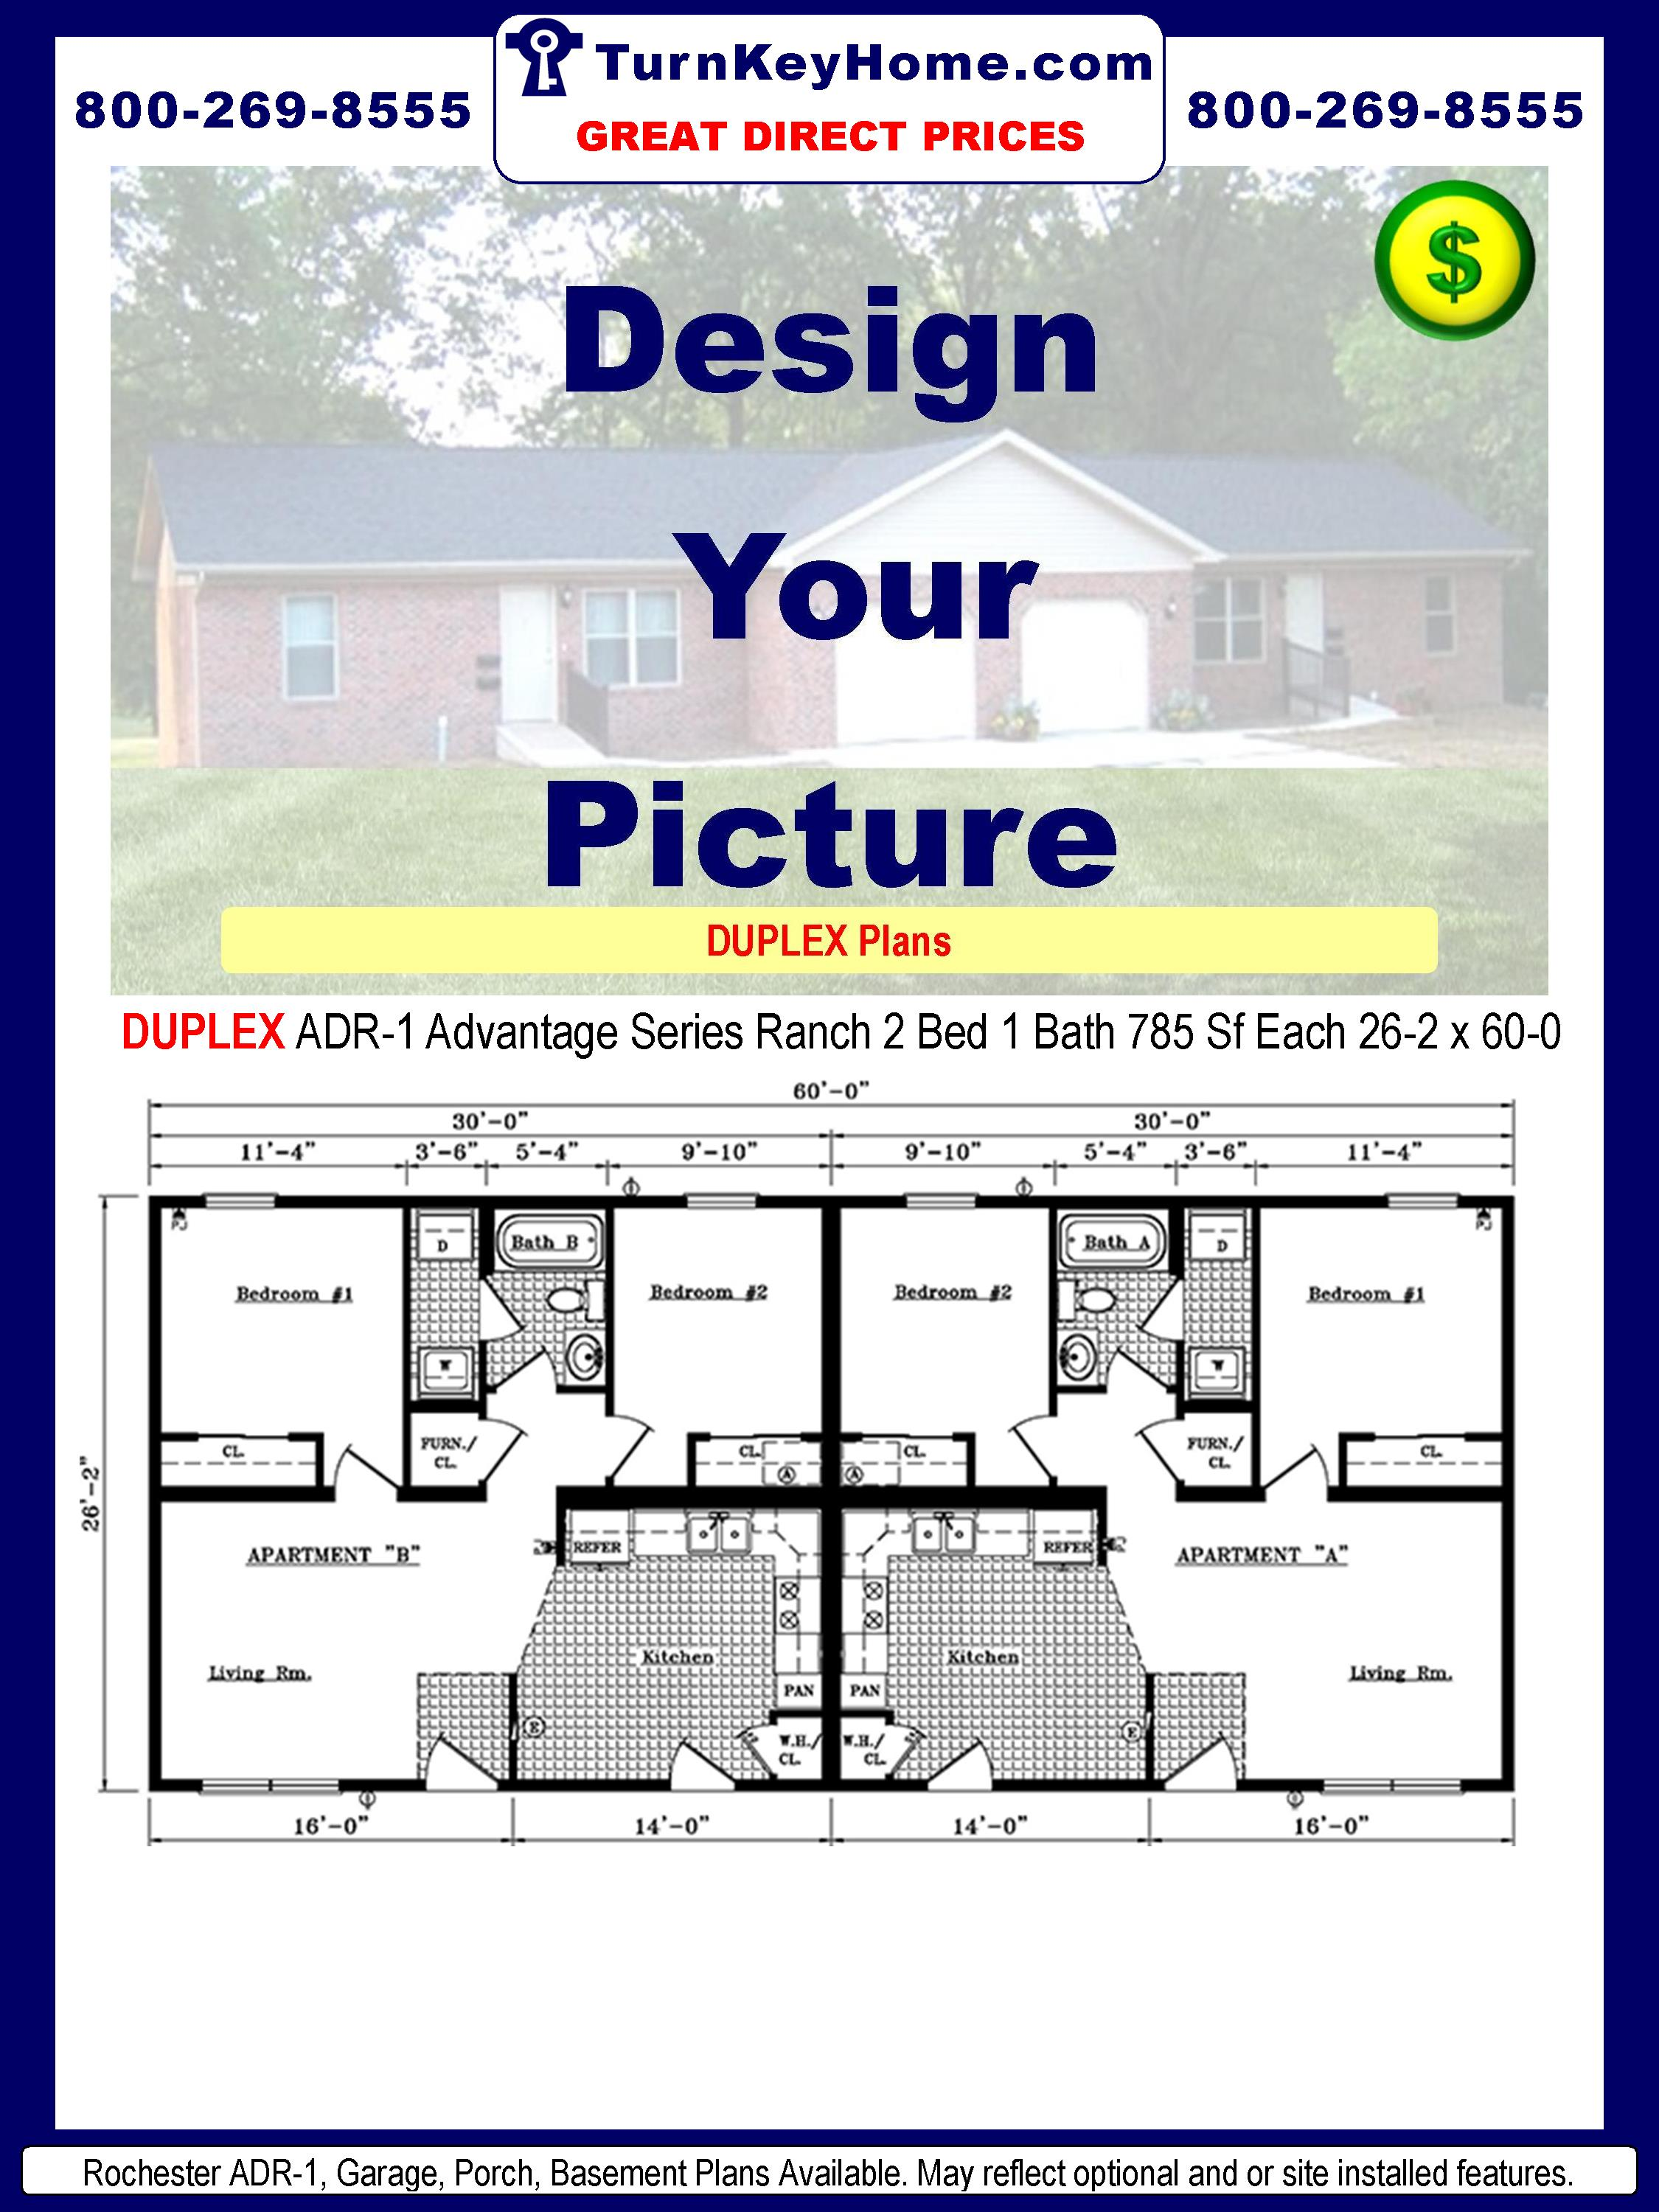 Rochester Homes DUPLEX ADR-1 Advantage Series Modular Ranch Plan 2 Bedroom 1 Bath 785 Sf Each 26-2 x 60-0